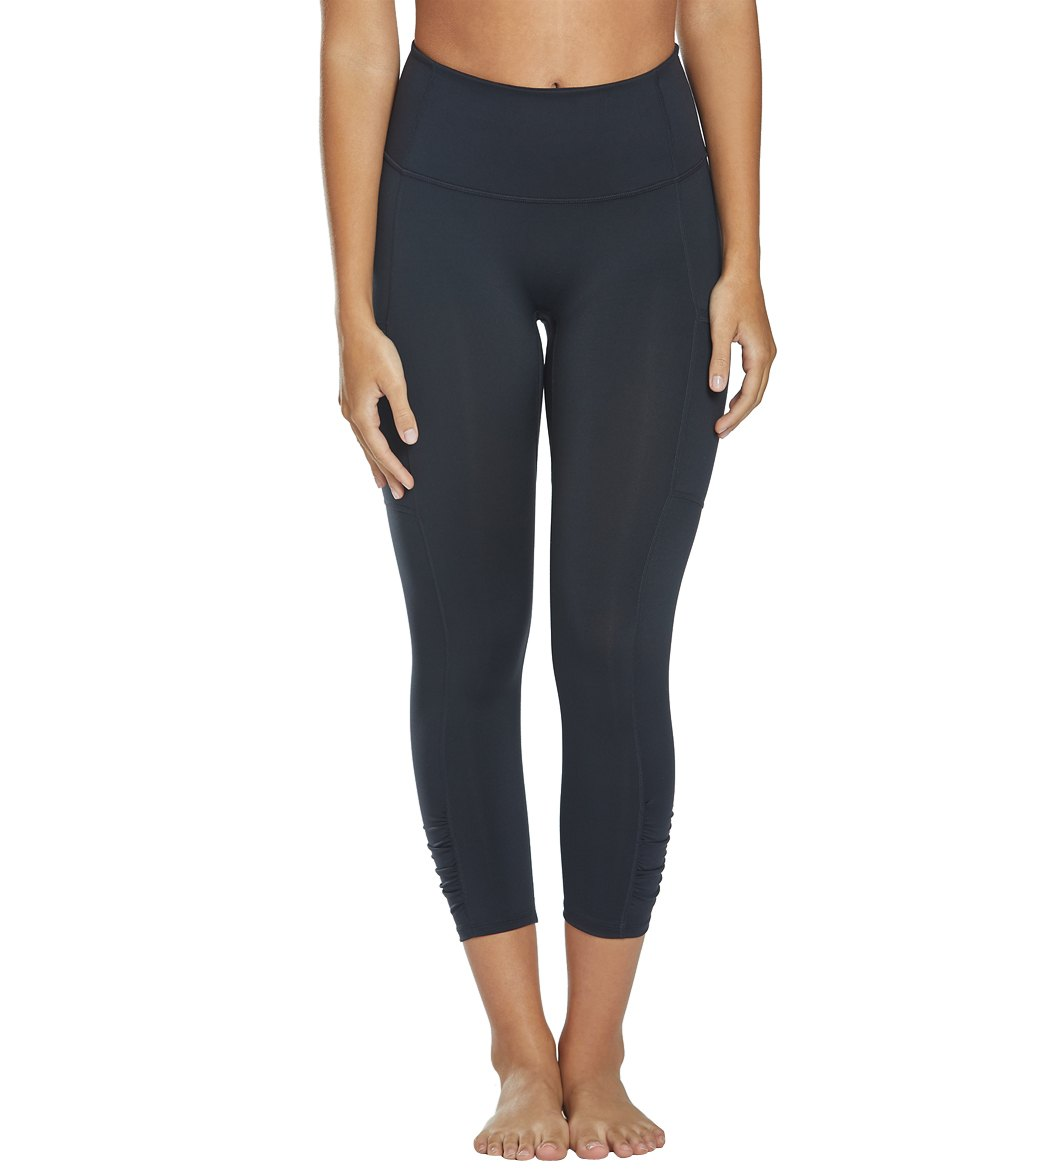 Free People Out of Your League Yoga Leggings - Black Spandex